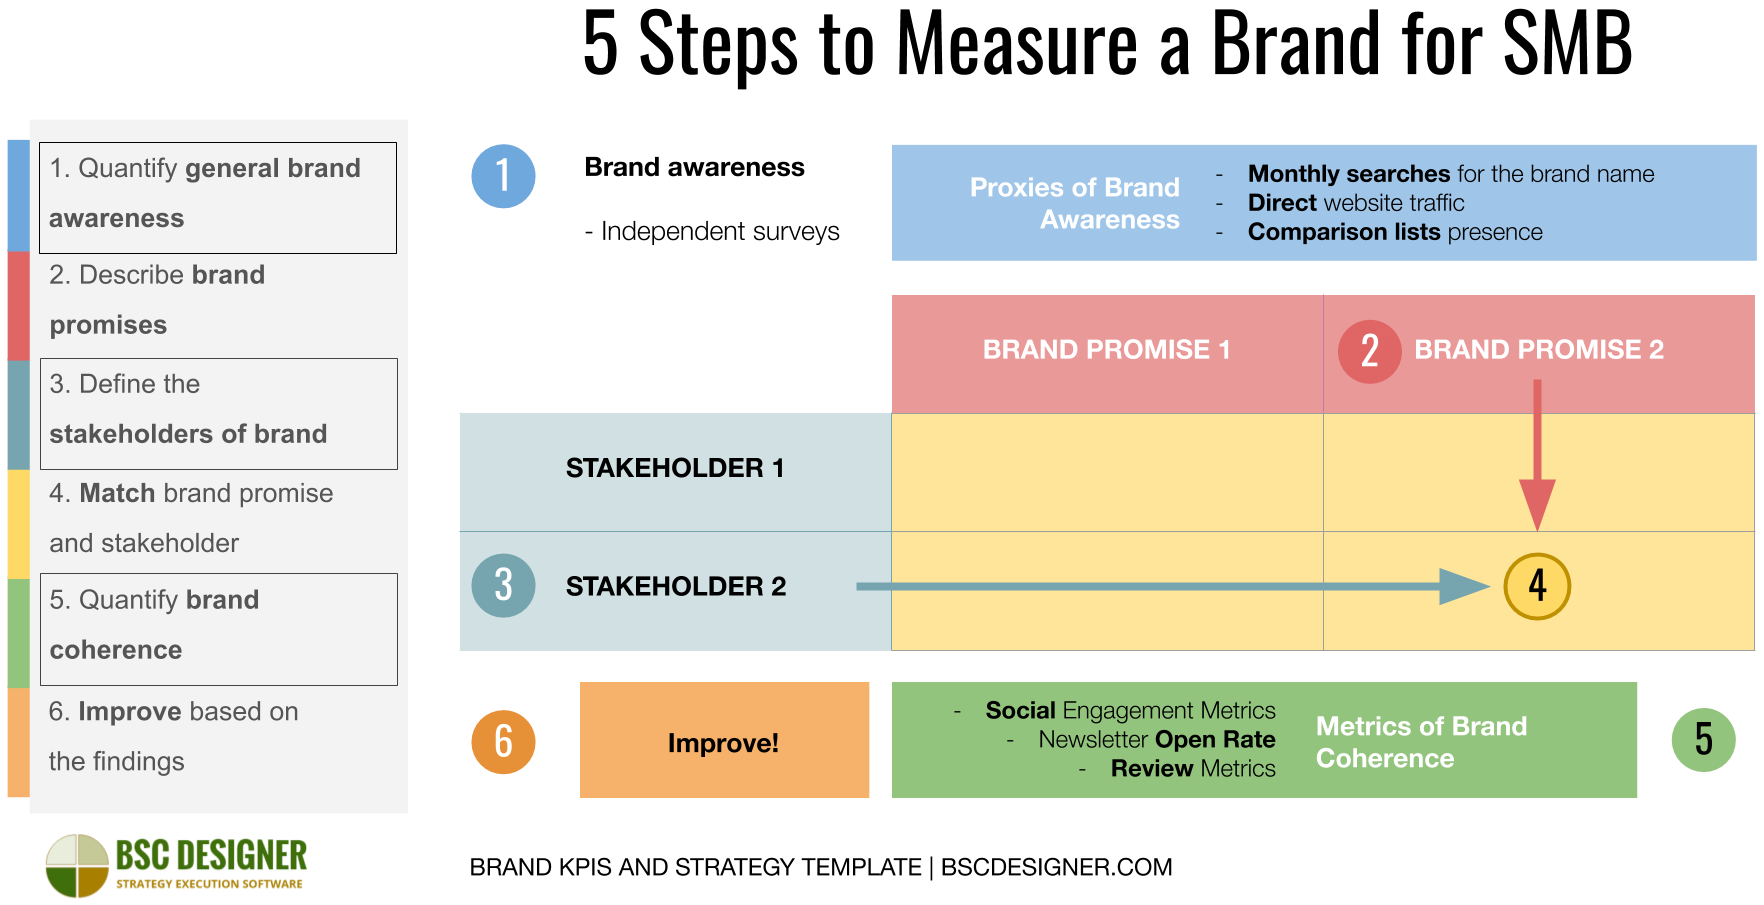 5 steps to measure brand for SMB